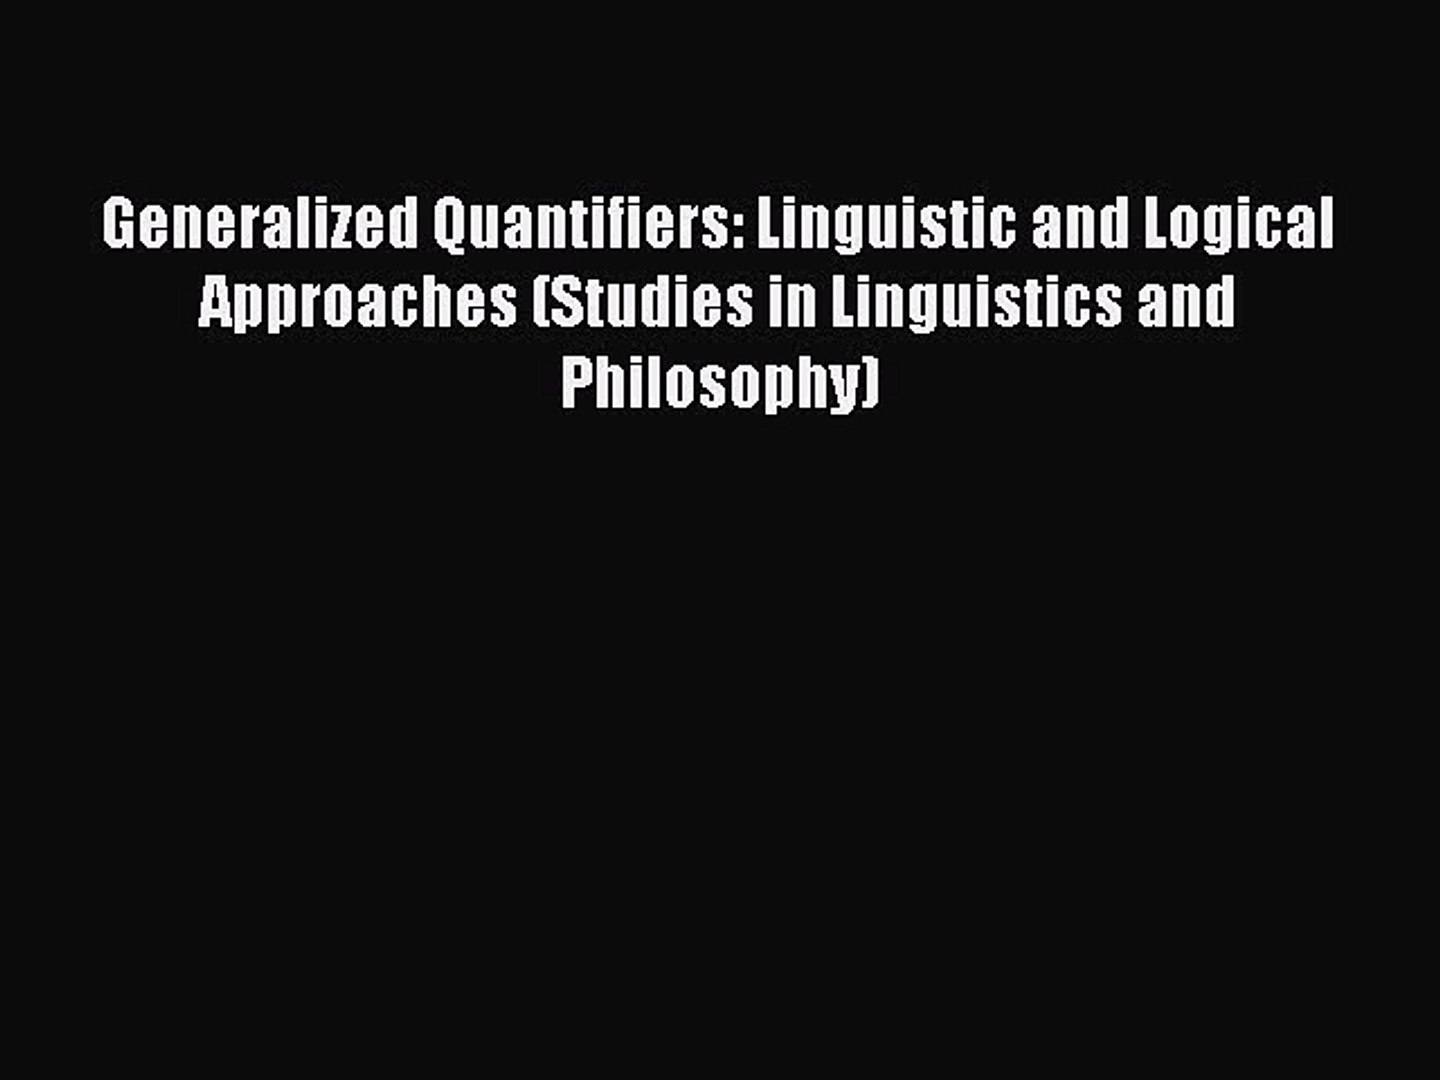 Generalized Quantifiers: Linguistic and Logical Approaches (Studies in Linguistics and Philosophy)